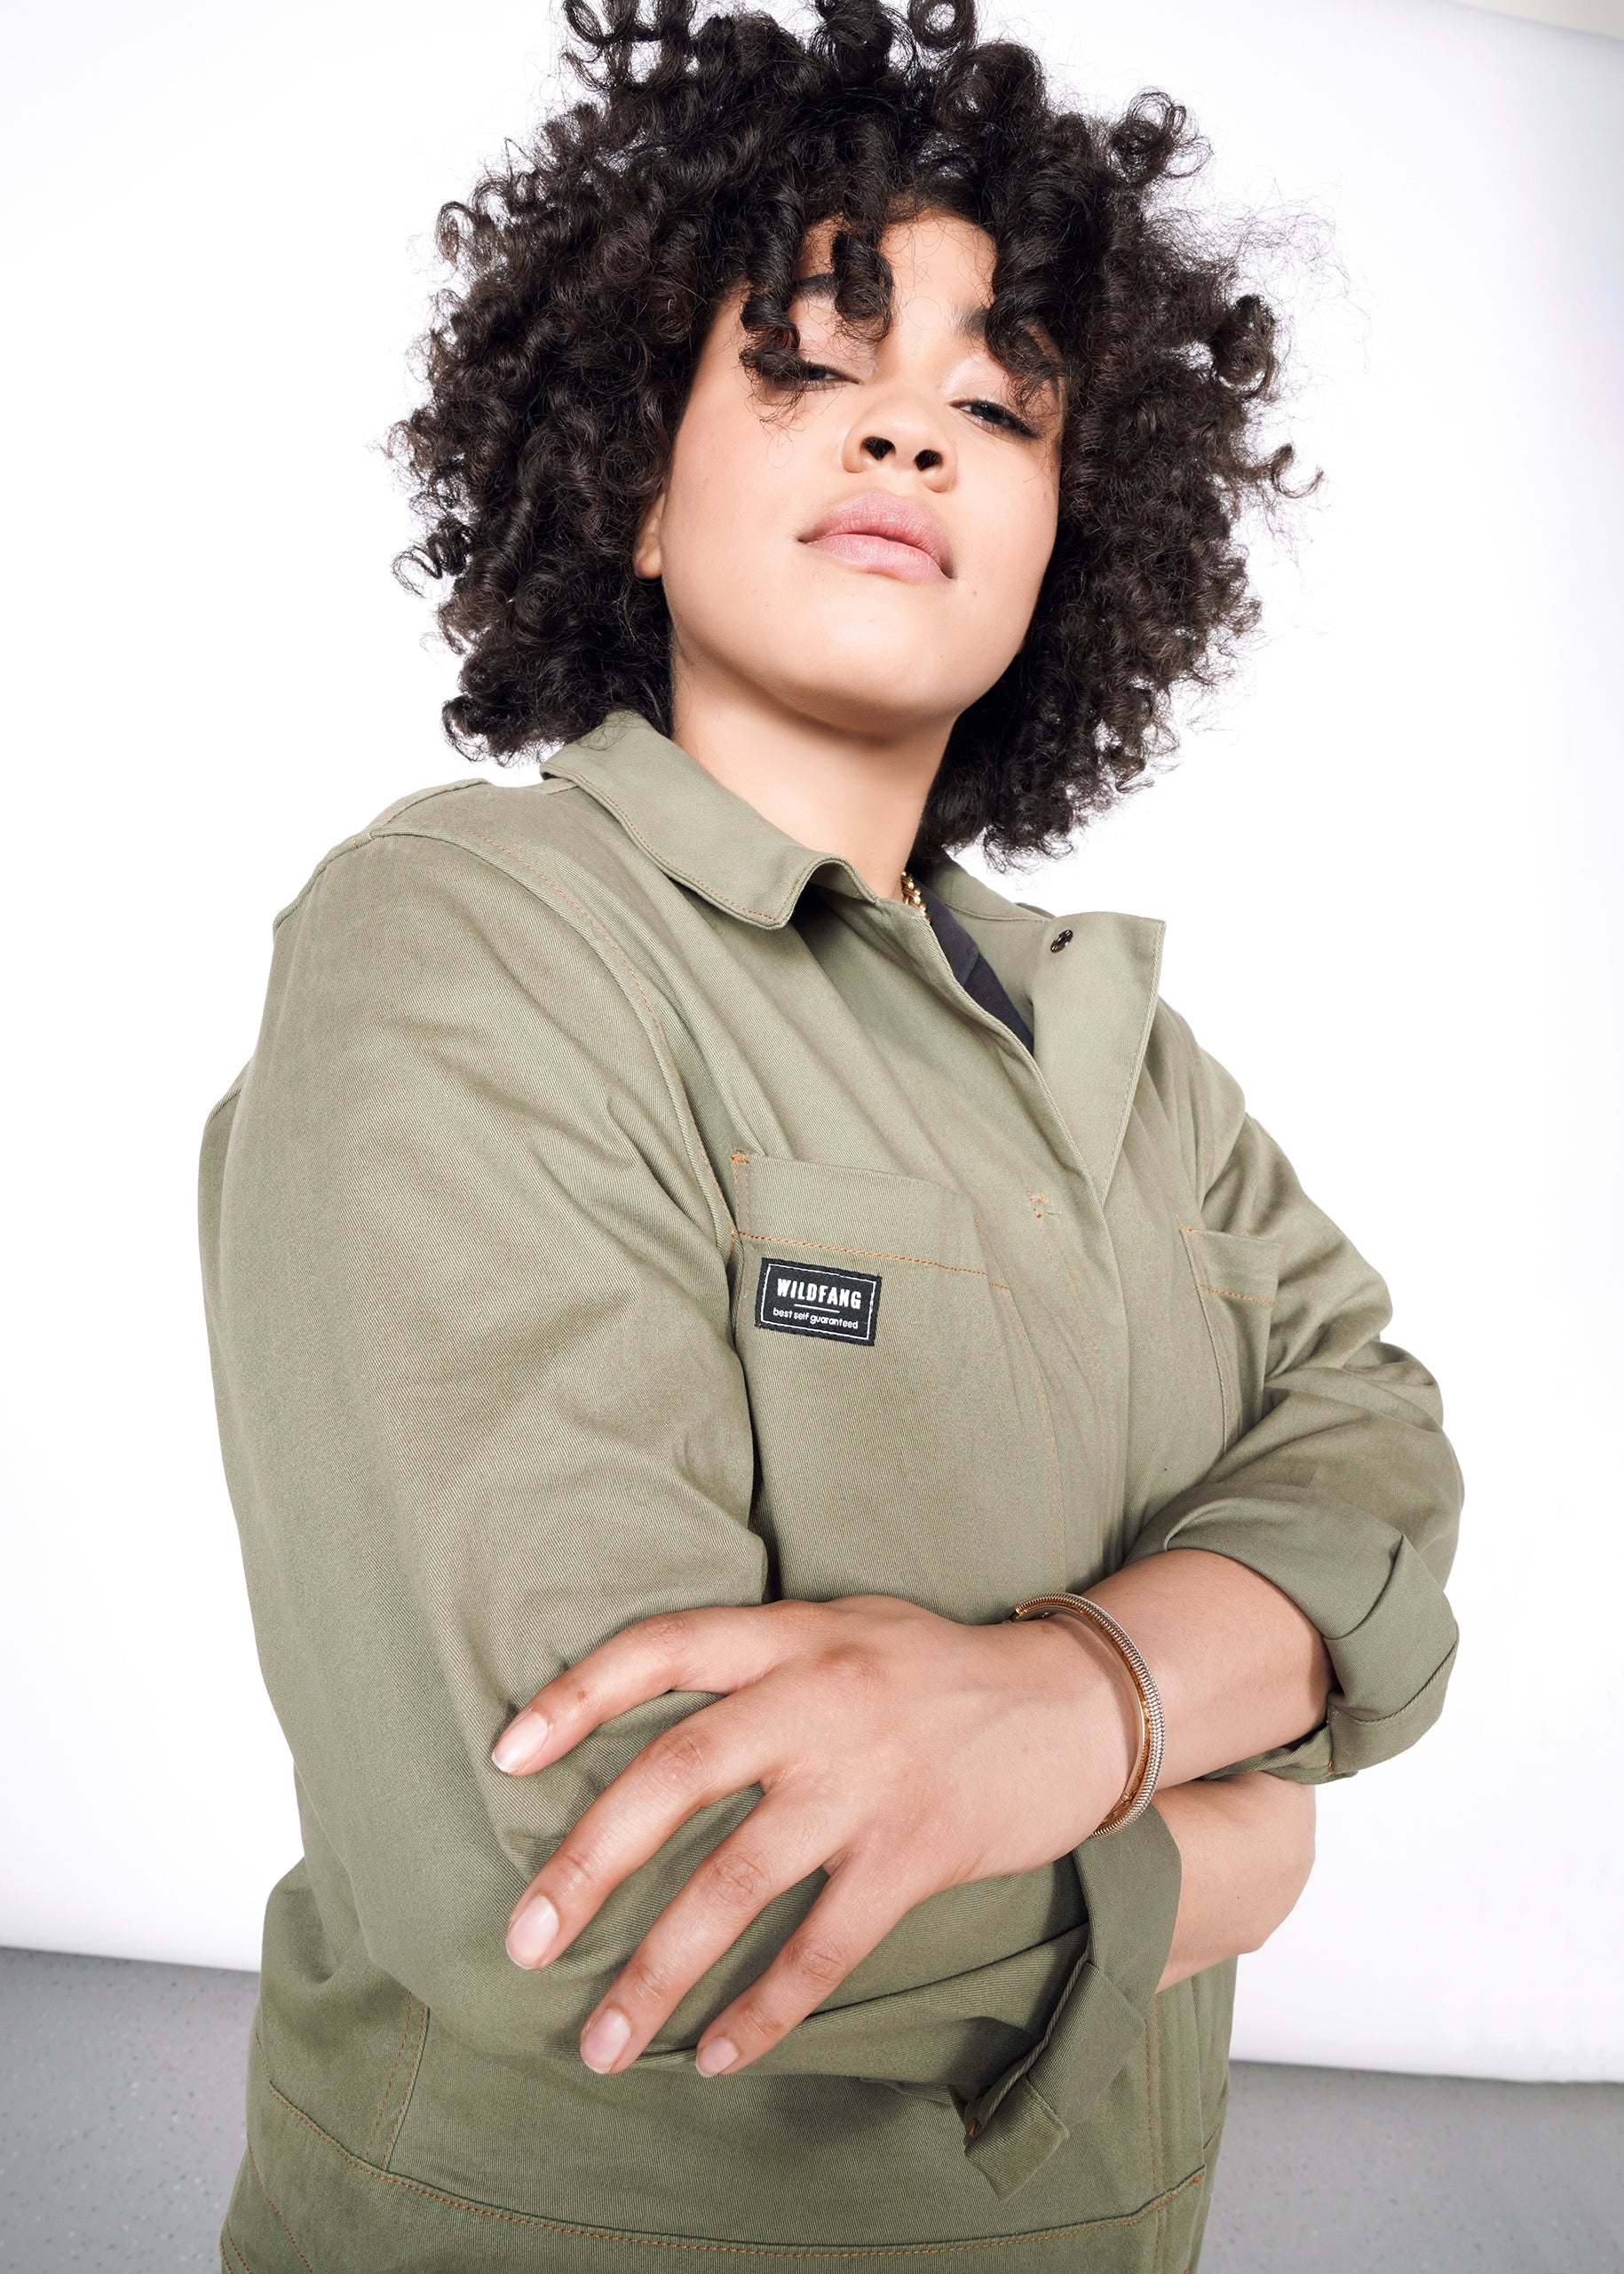 Curly haired model wearing olive long sleeve coveralls with arms folded at chest